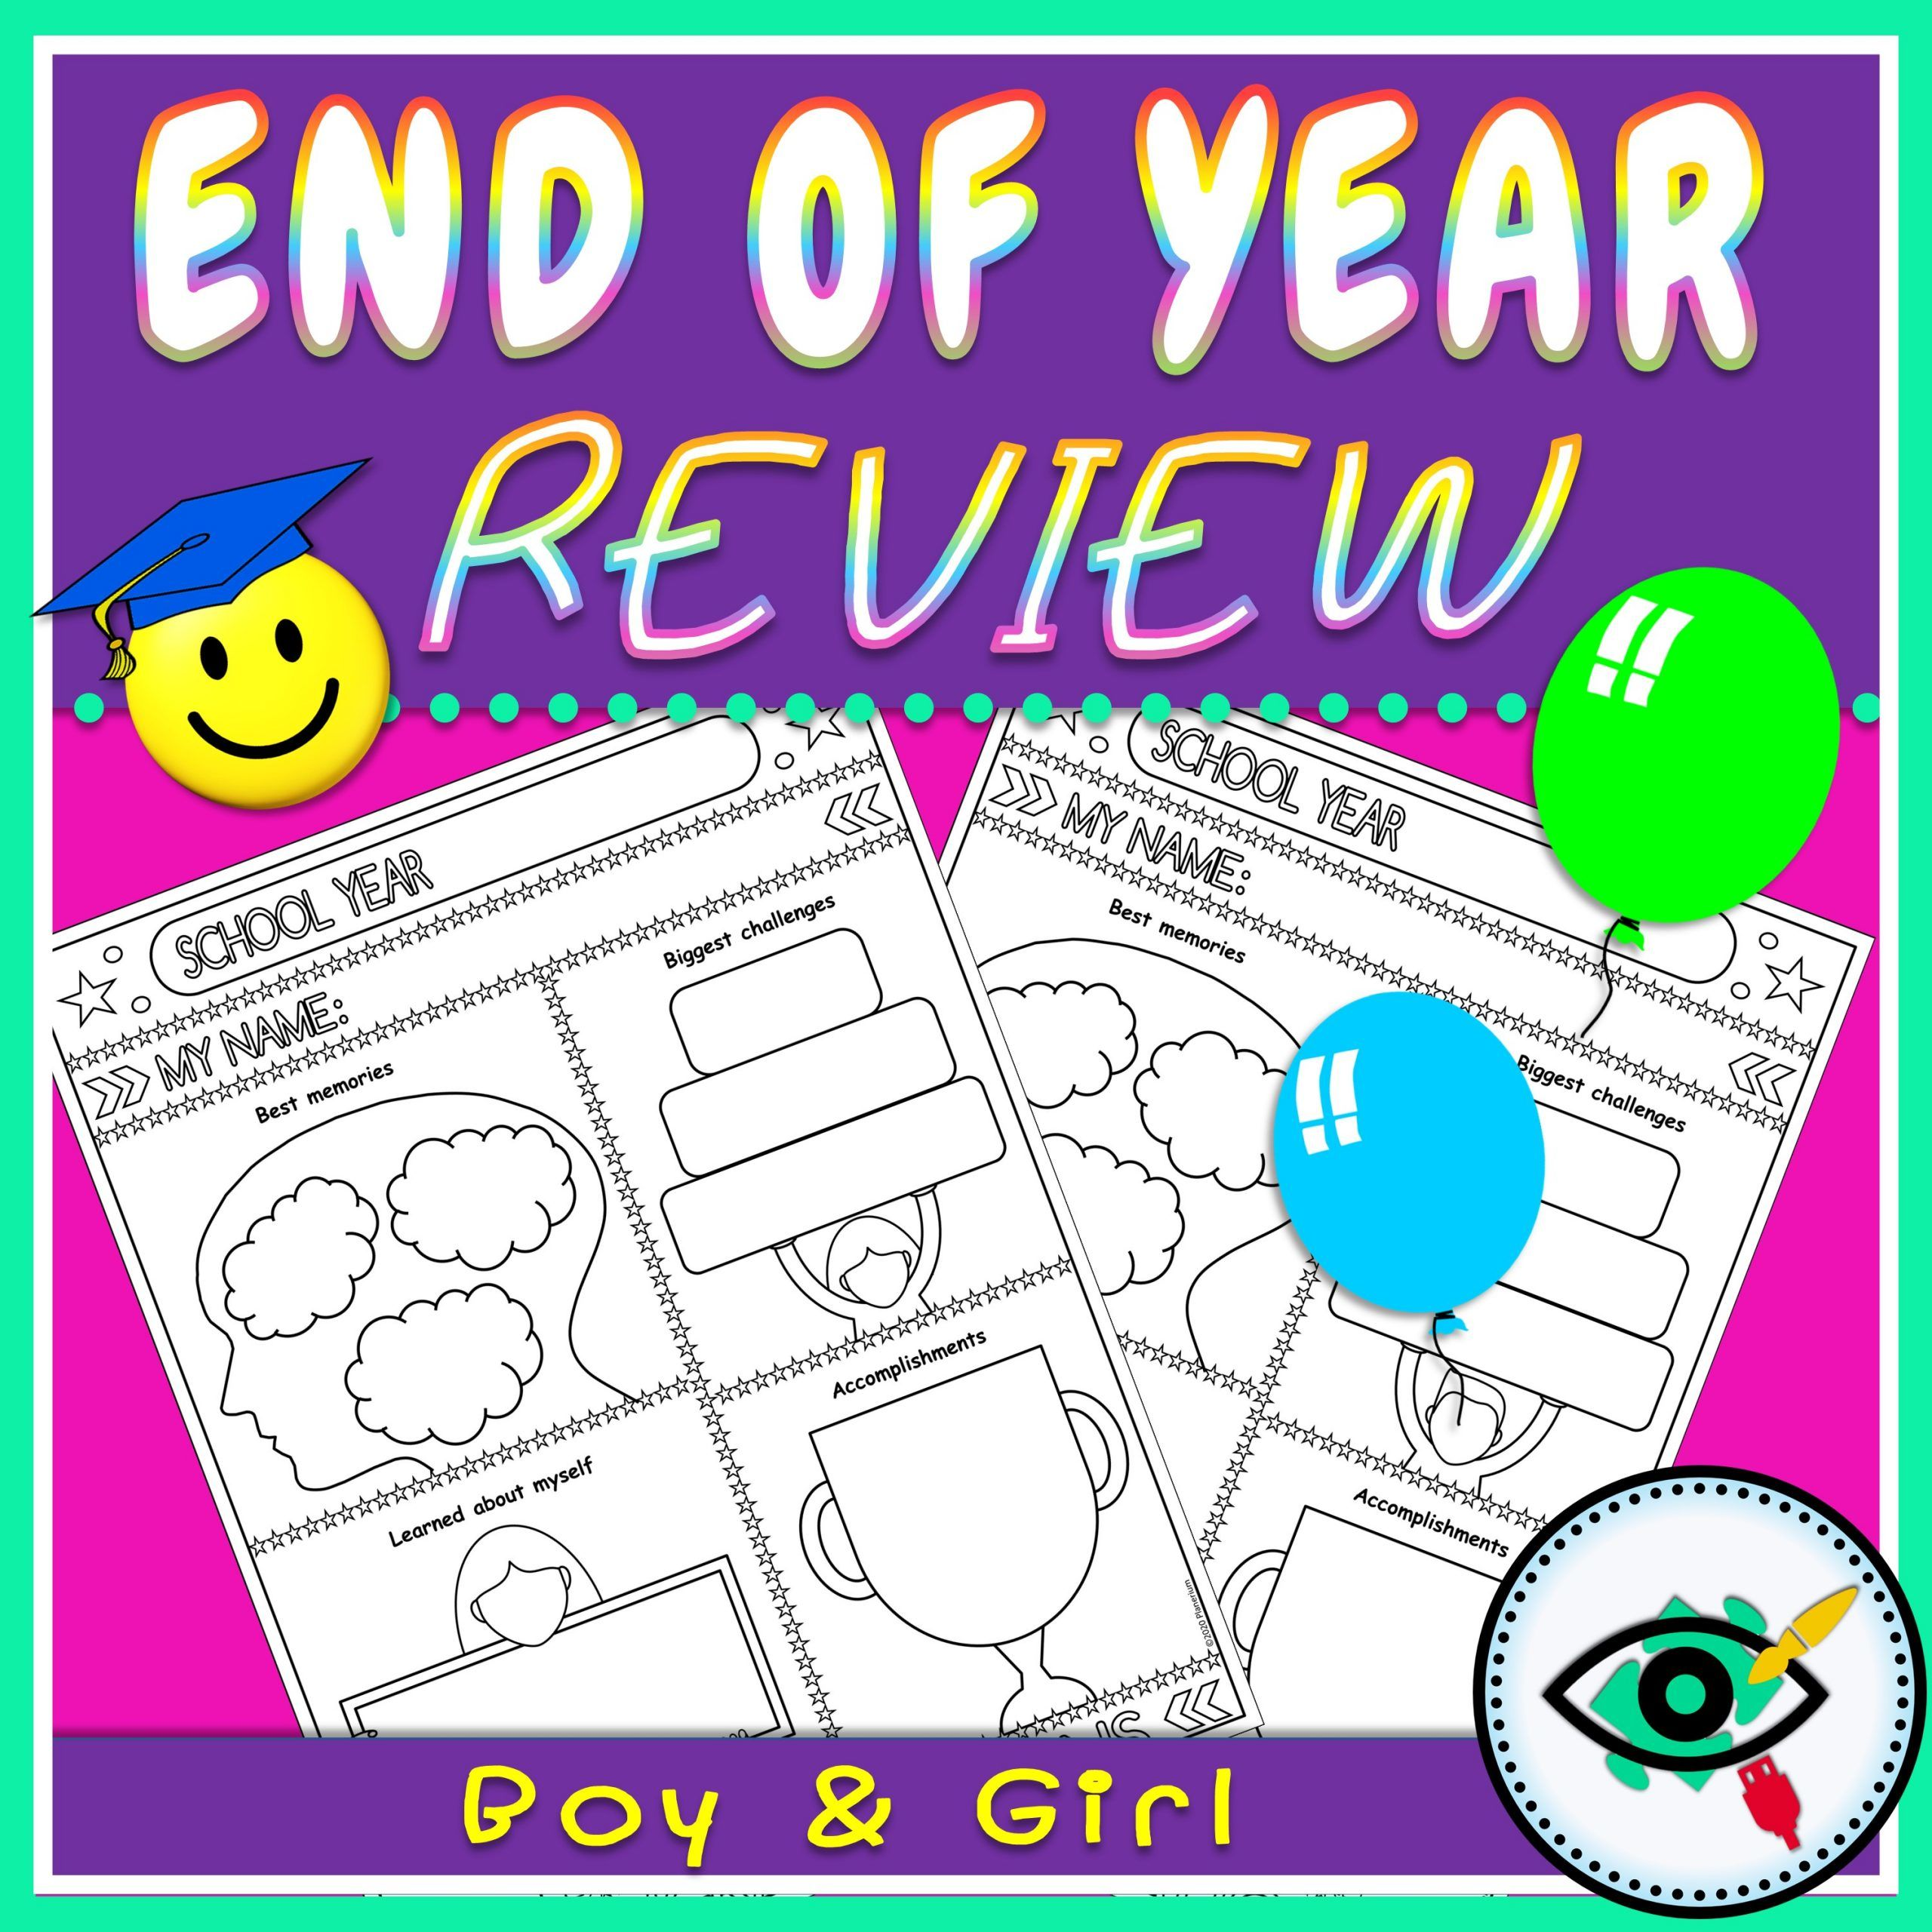 End of Year - Review Page - Title